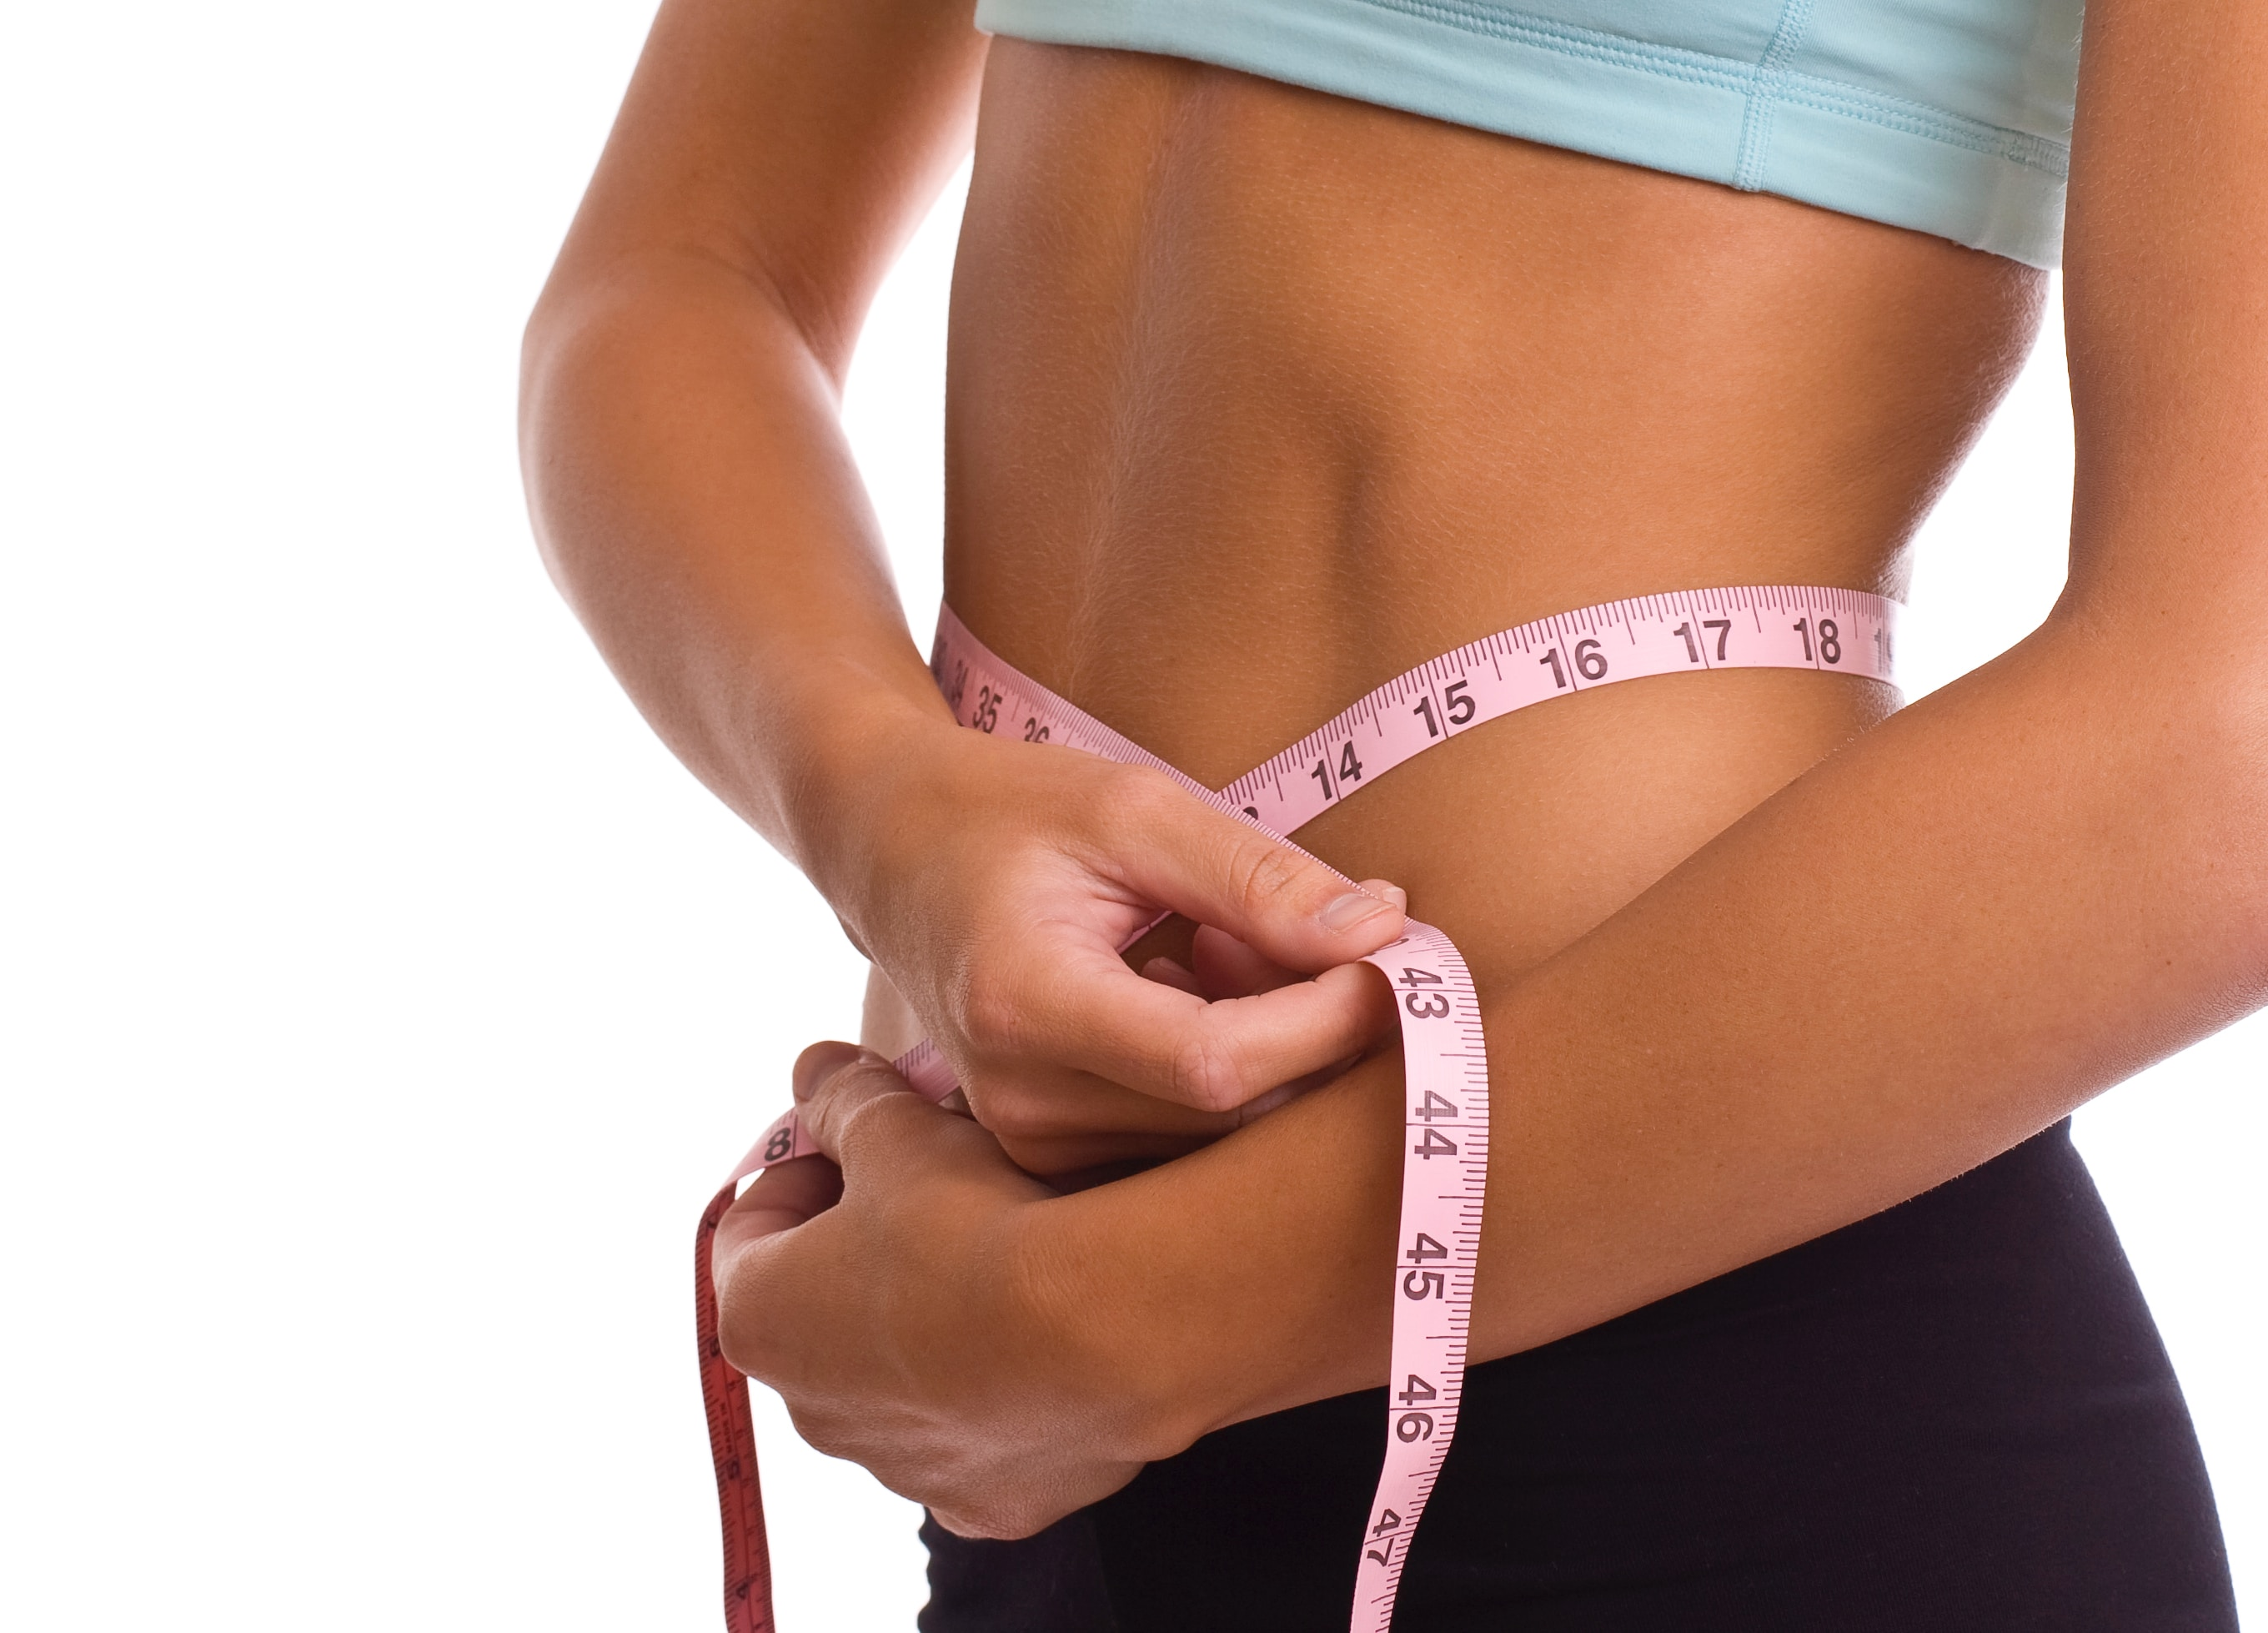 Why Skinny Doesn't Mean Healthy